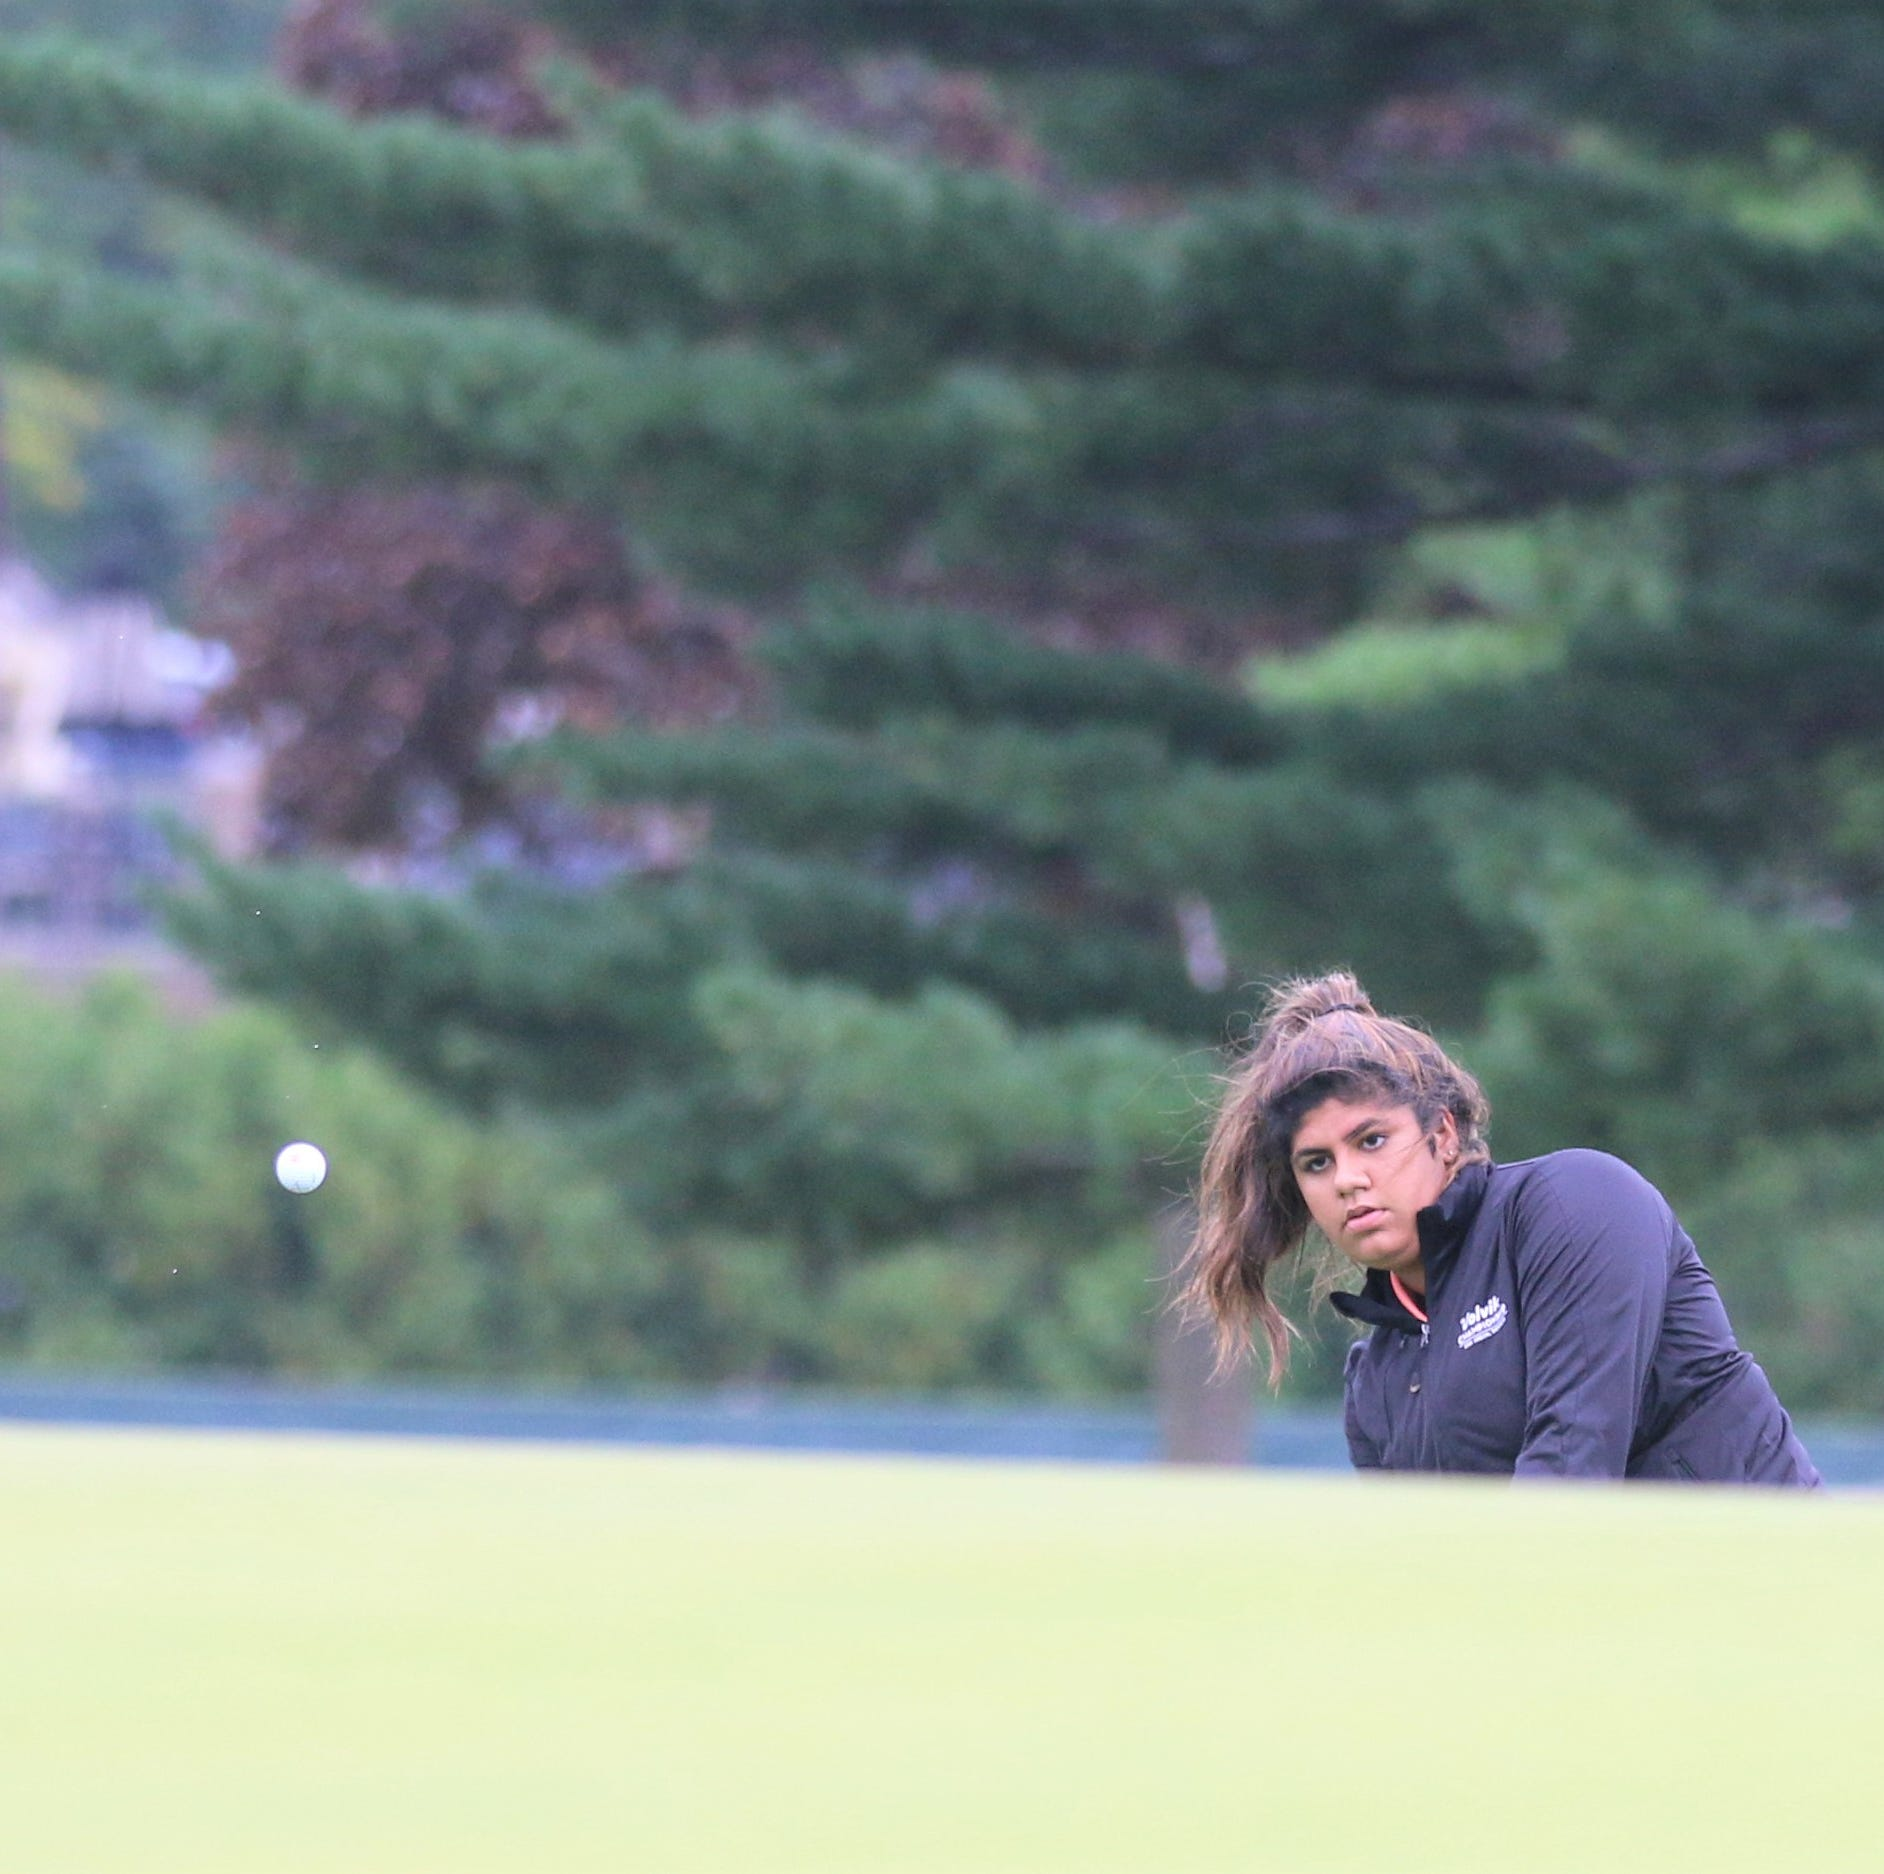 Gill leads way as No. 1 Northville girls golfers earn eighth tourney title